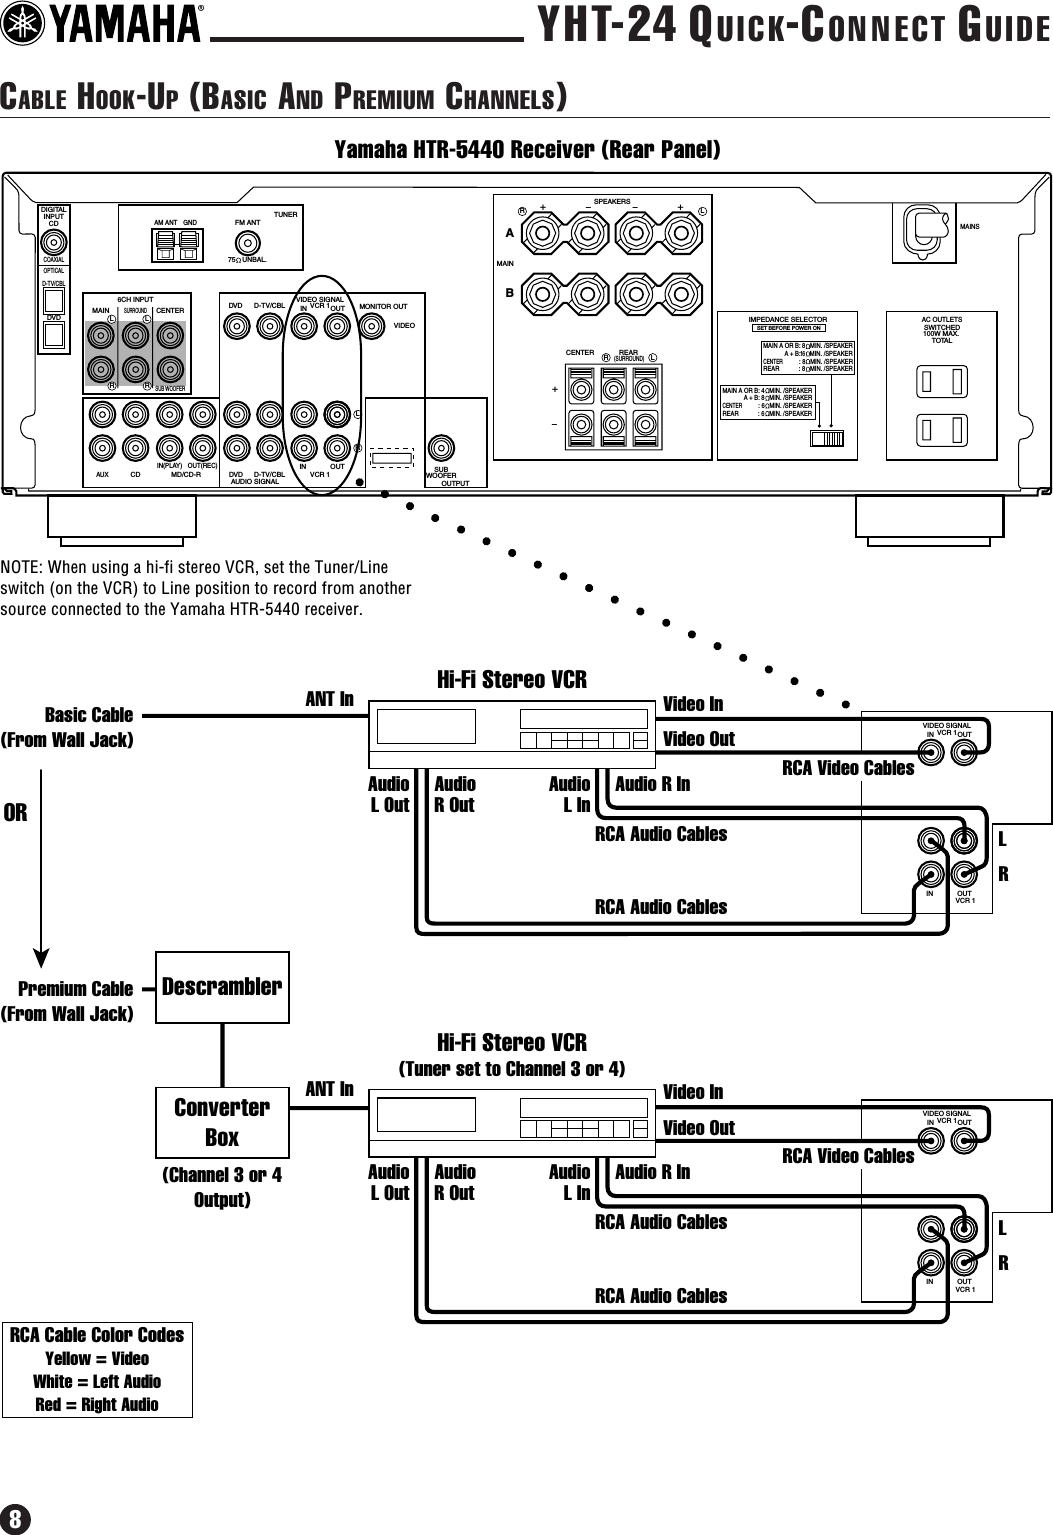 Yamaha Yht 24 Quick Connect Connection Diagram Yht24qc Rca Surround Sound Wiring Page 8 Of 12